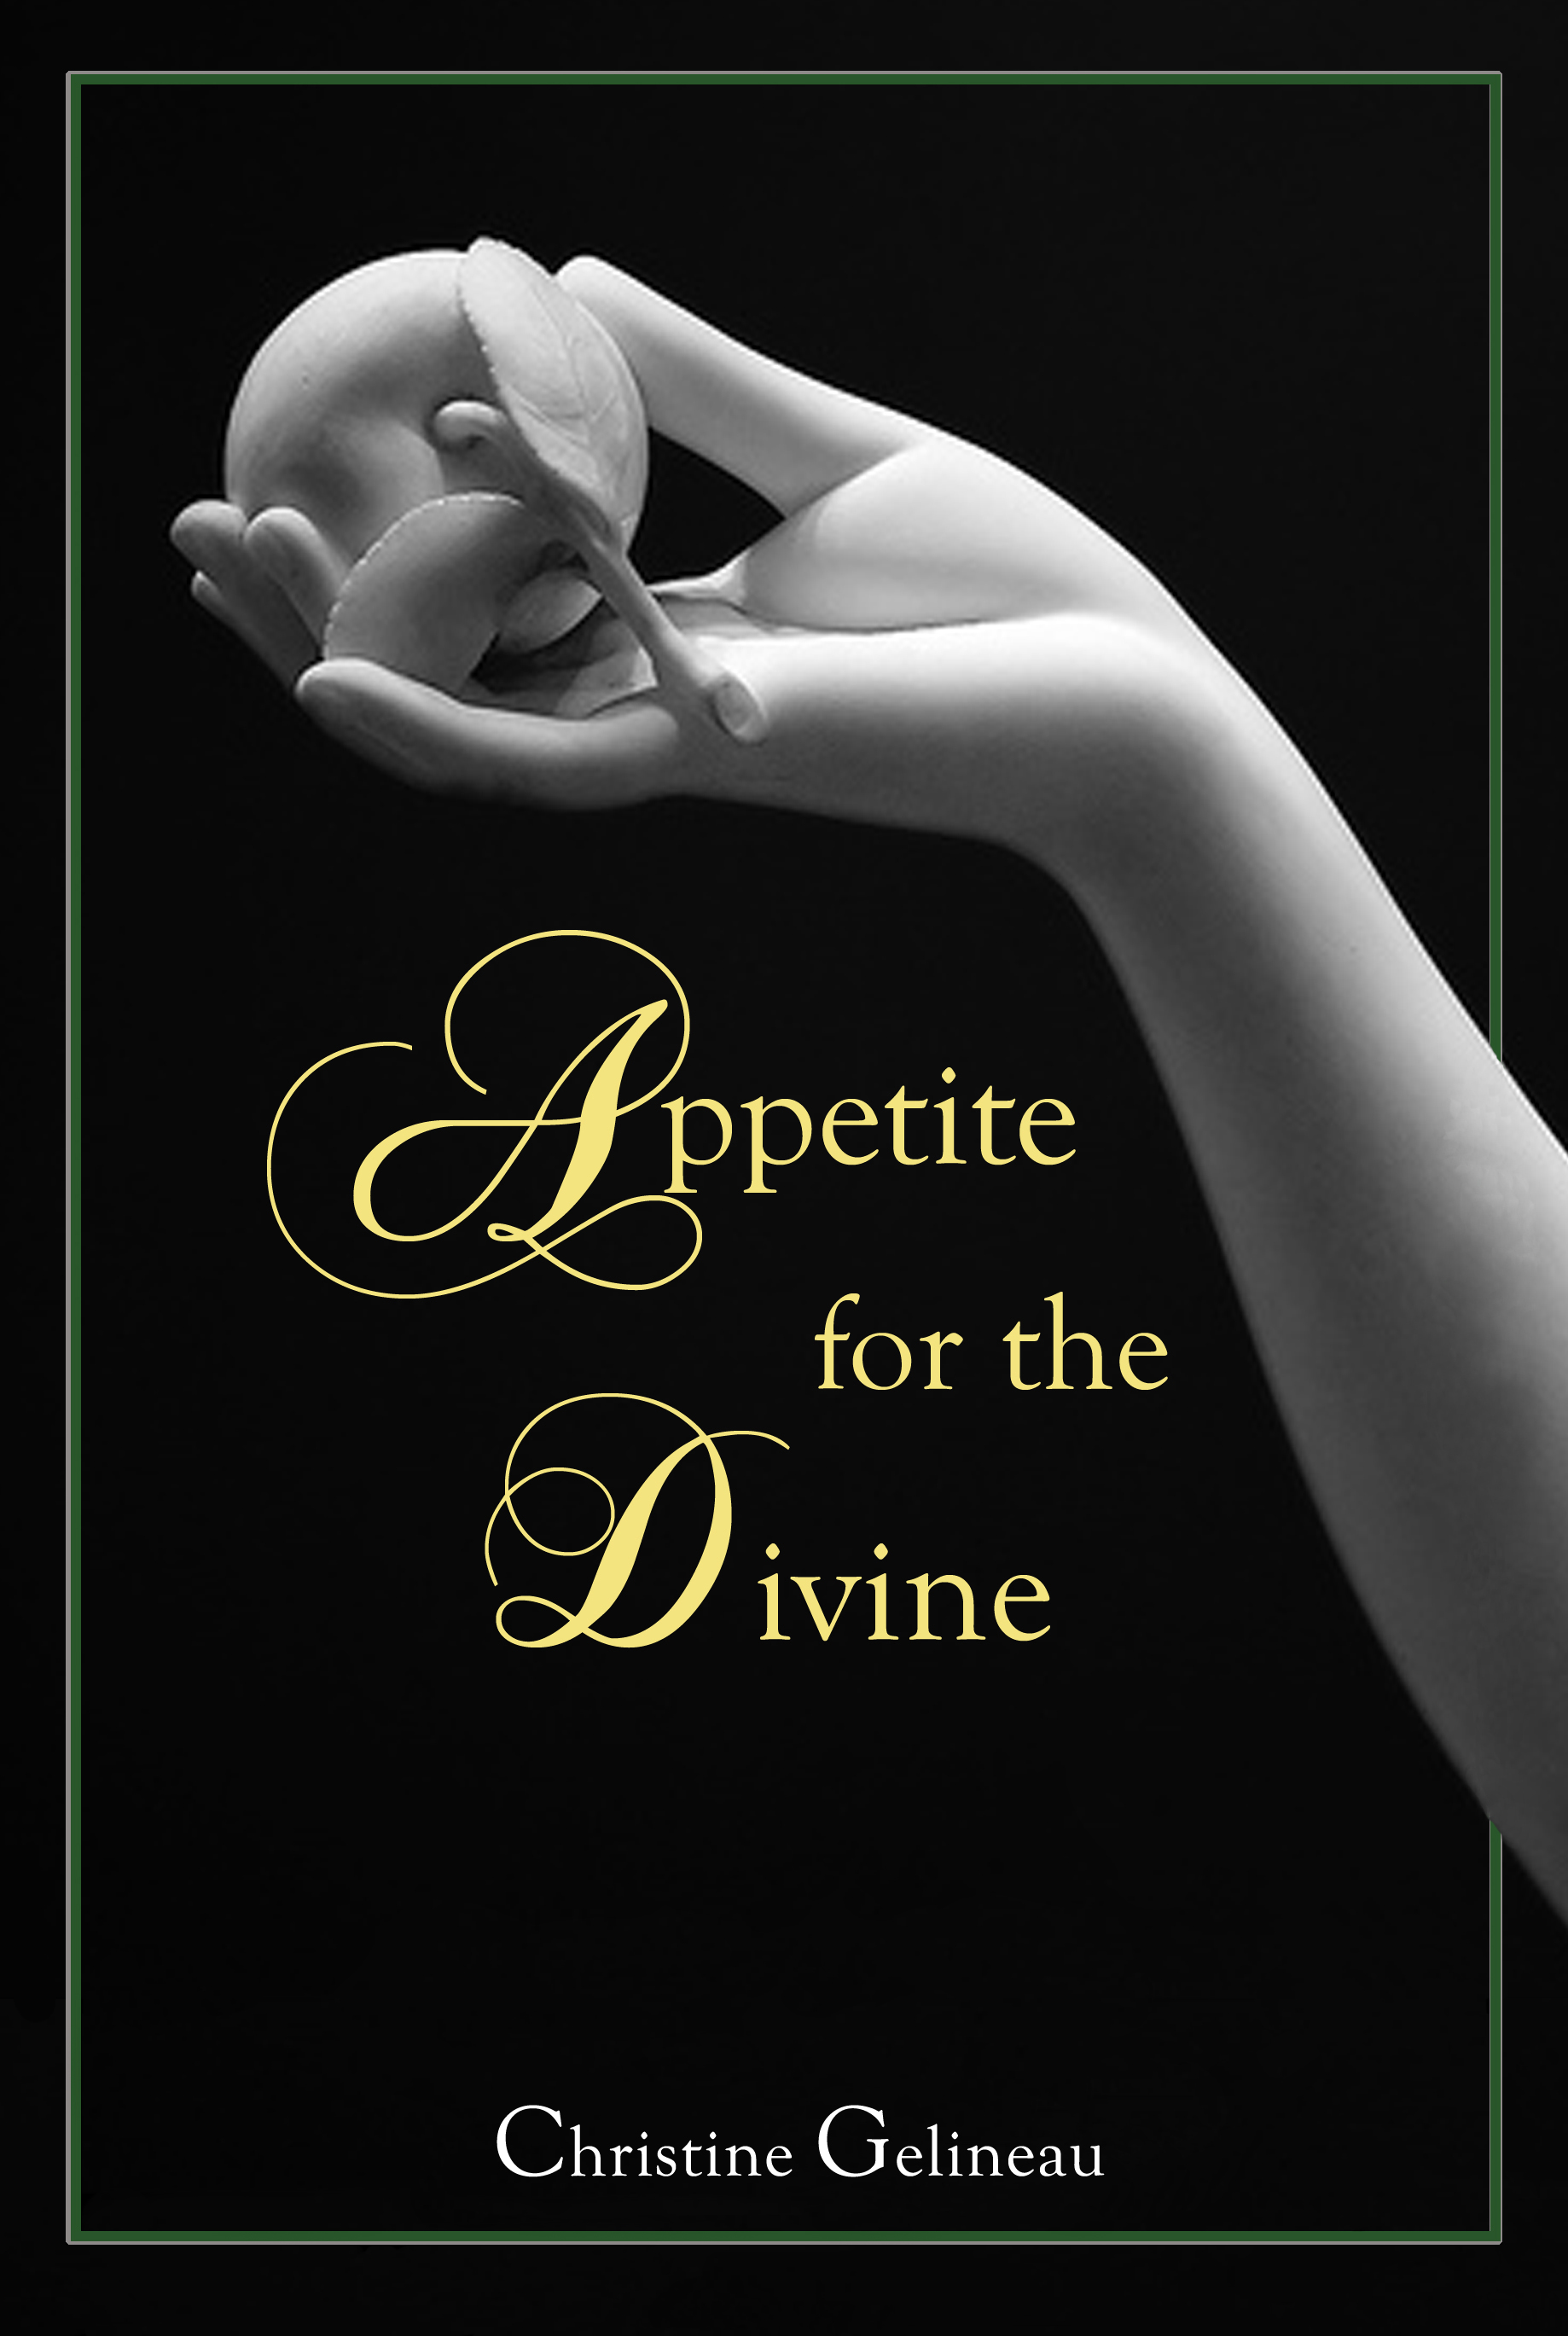 Appetite for the Divine